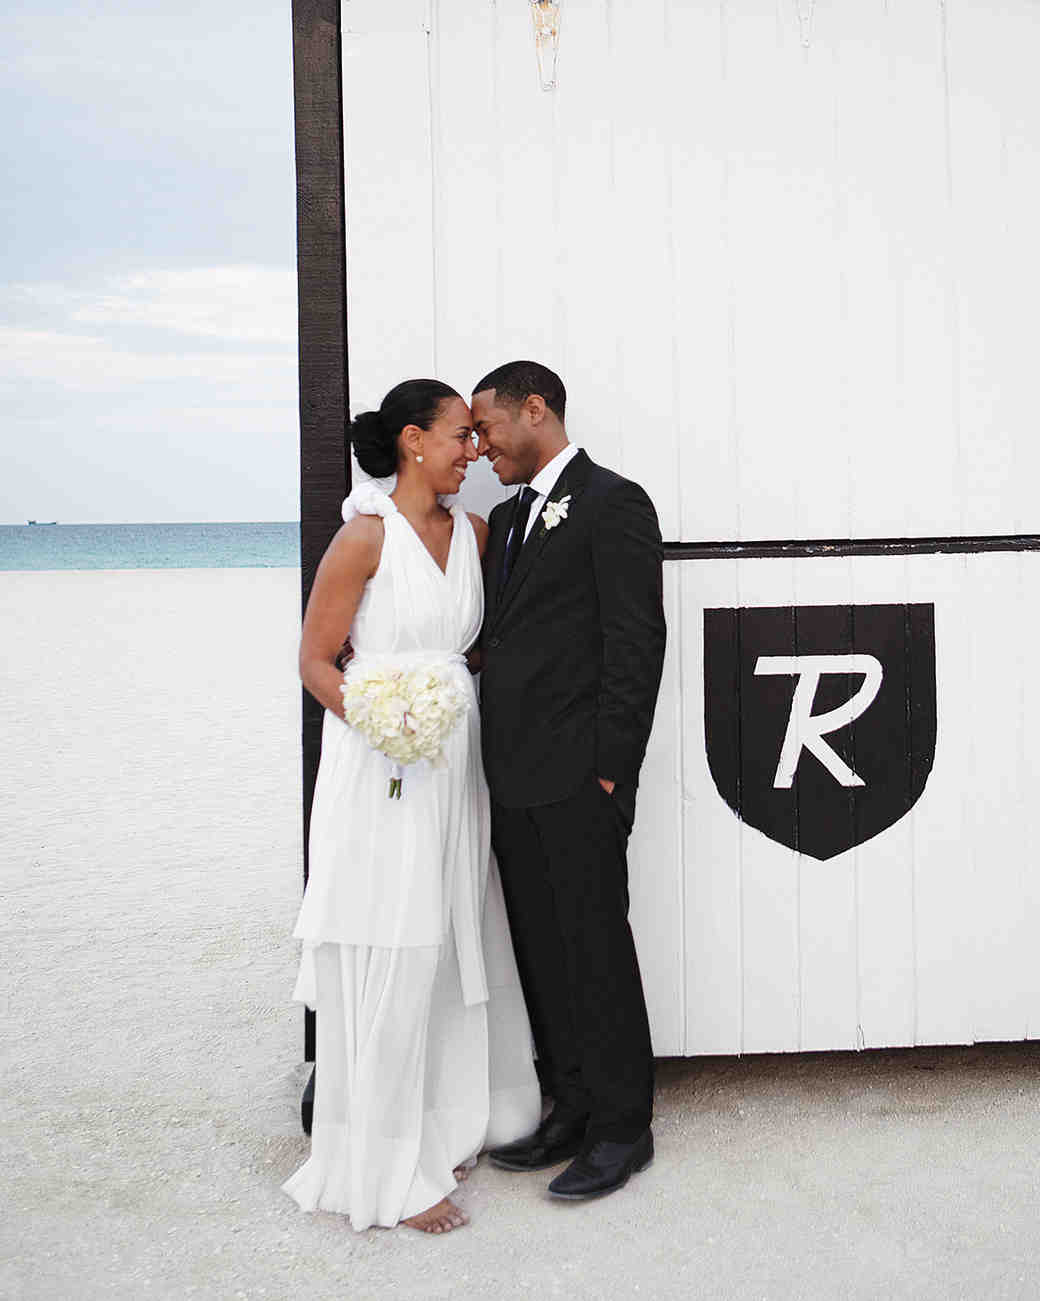 A Modern Black And White Destination Wedding In Miami